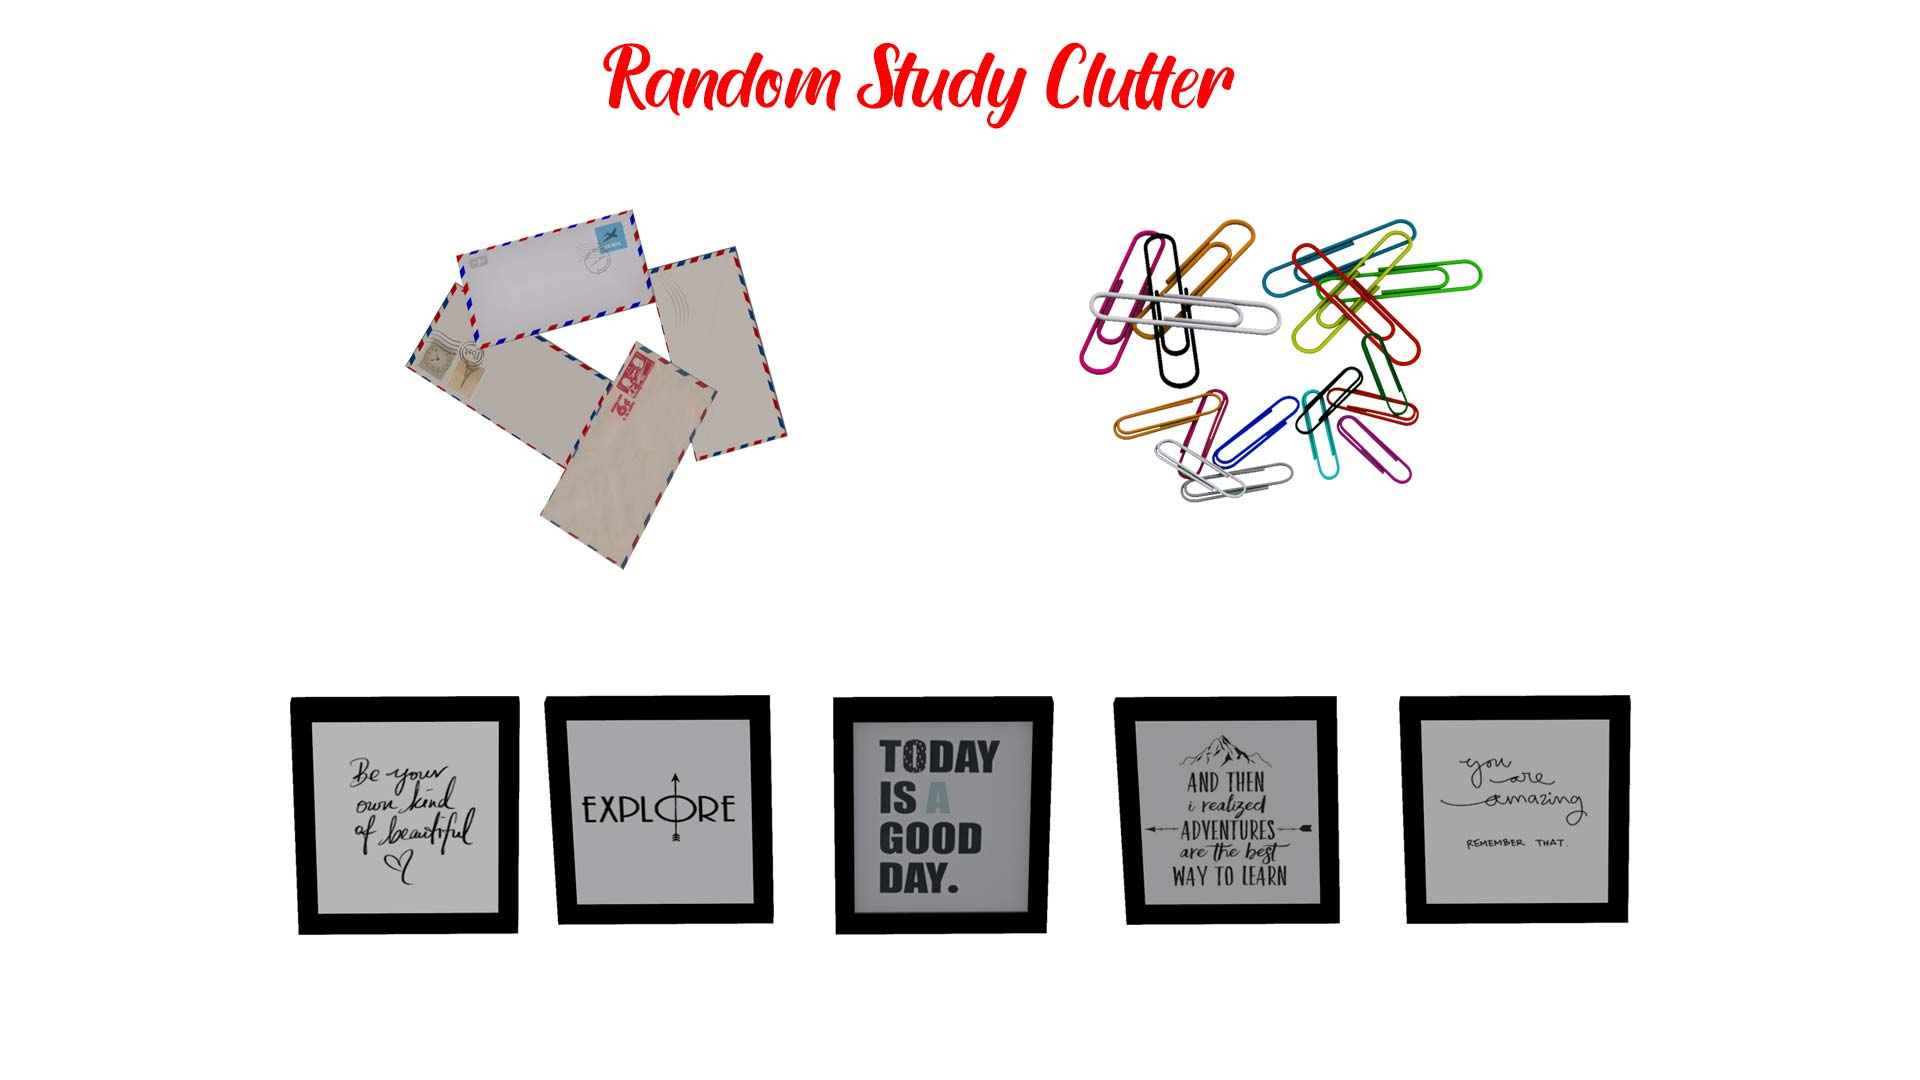 Random Study Clutter, high quality sims 4 cc, sunkissedlilacs, free sims 4 decor, sims 4 custom content,